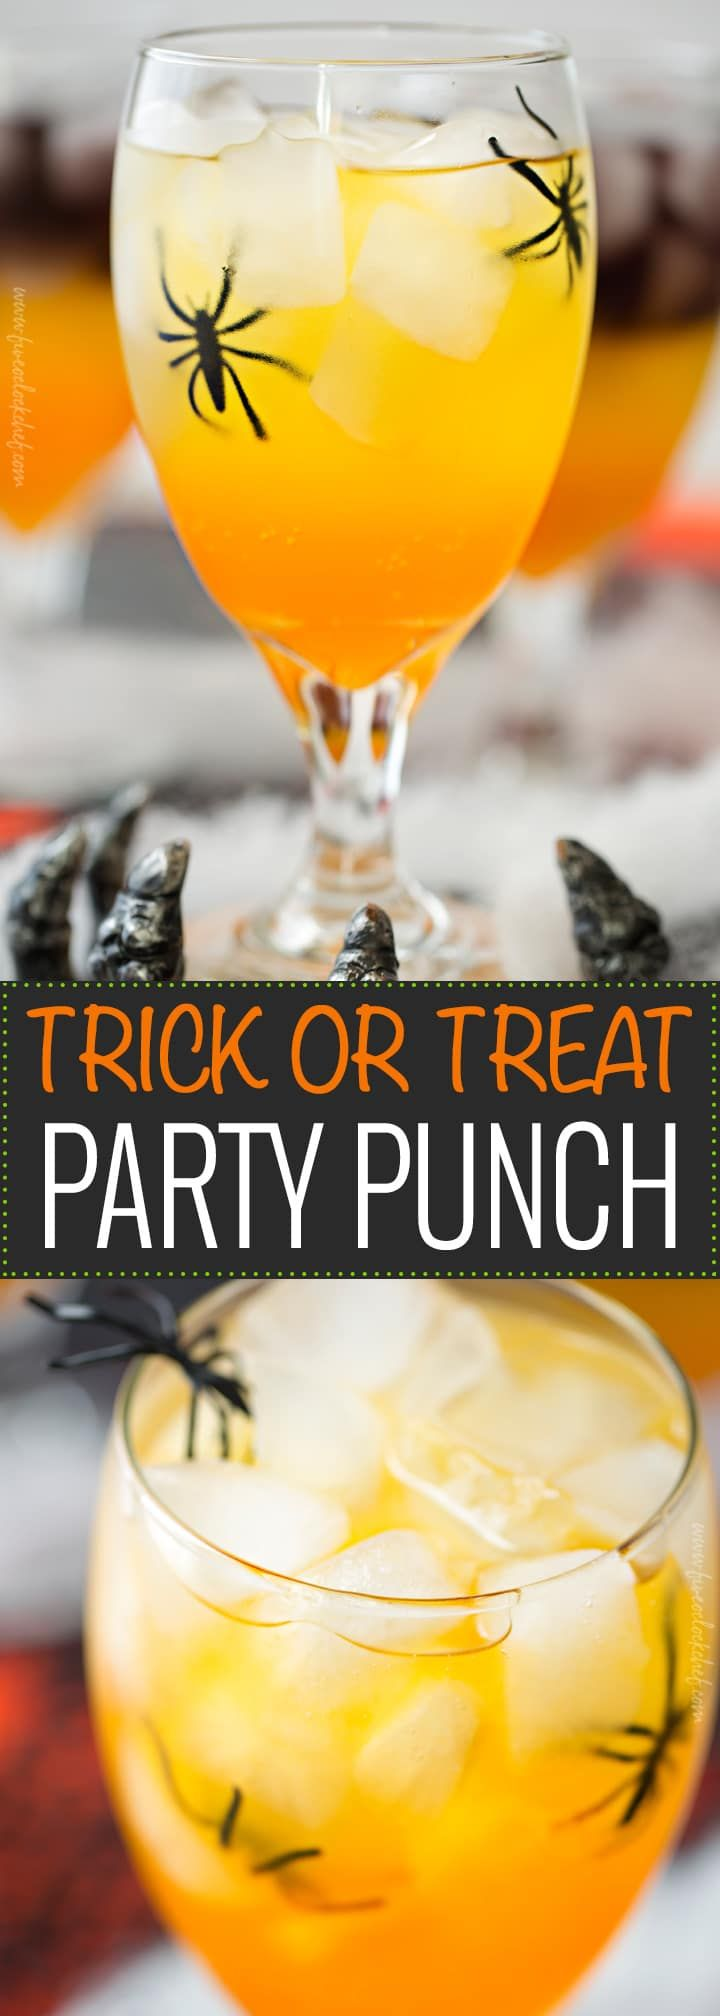 Trick or Treat Party Punch | This non-alcoholic party punch is layered to resemble a candy corn, with plastic spiders added for a fun spooky effect! | https://www.the5oclockchef.com | #punch #party #trickortreat #halloween #nonalcoholic #drinkrecipe